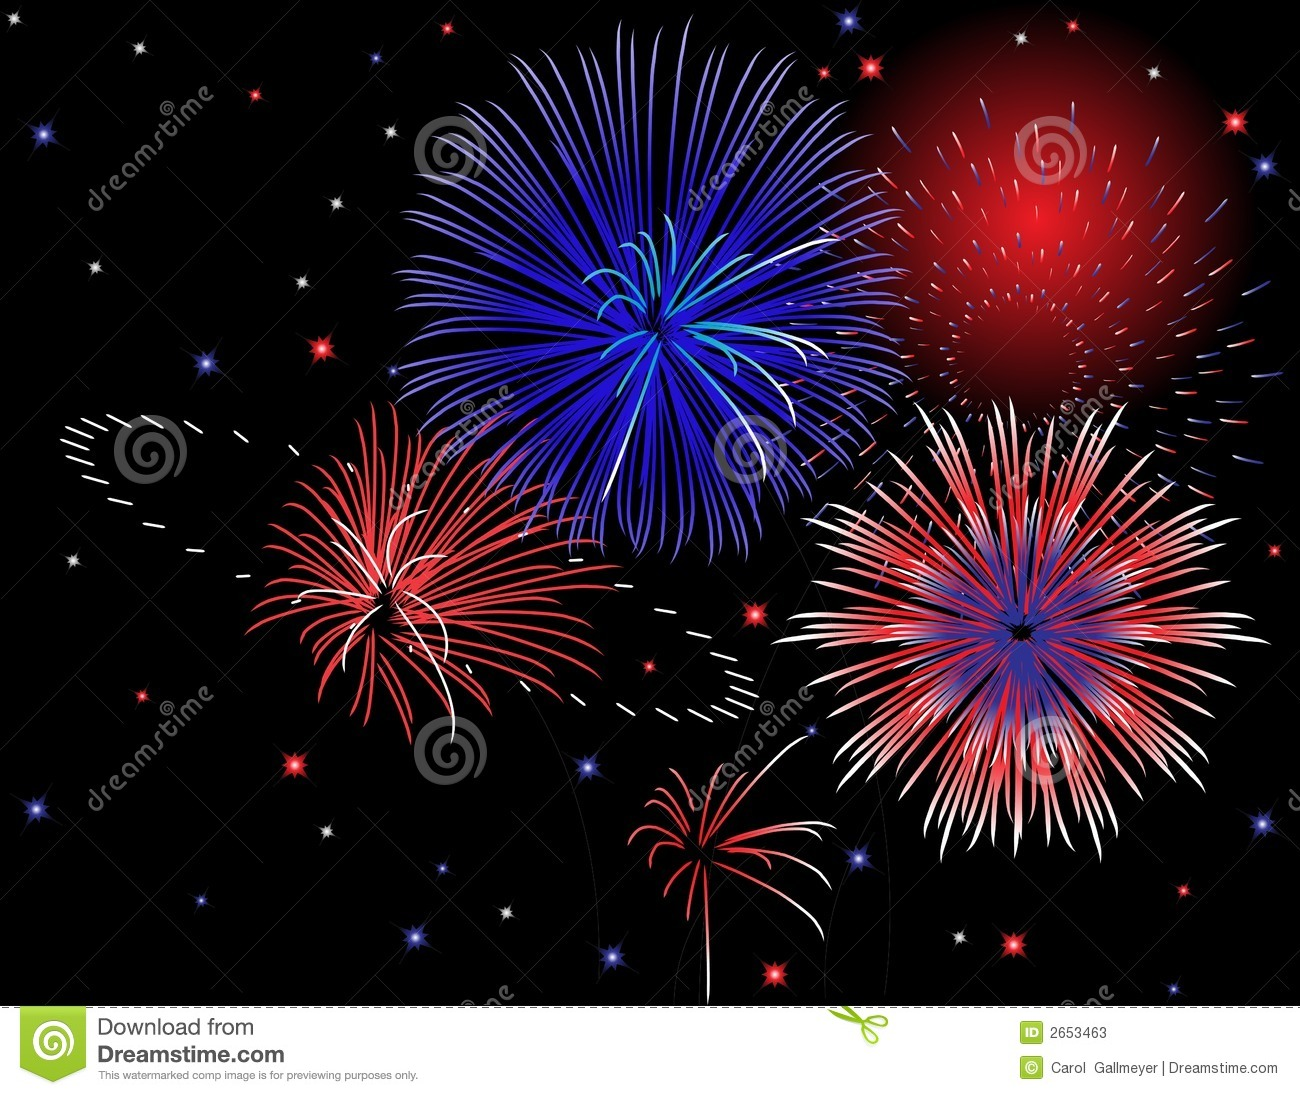 Red White And Blue Firework Clipart In red, white, and blue.